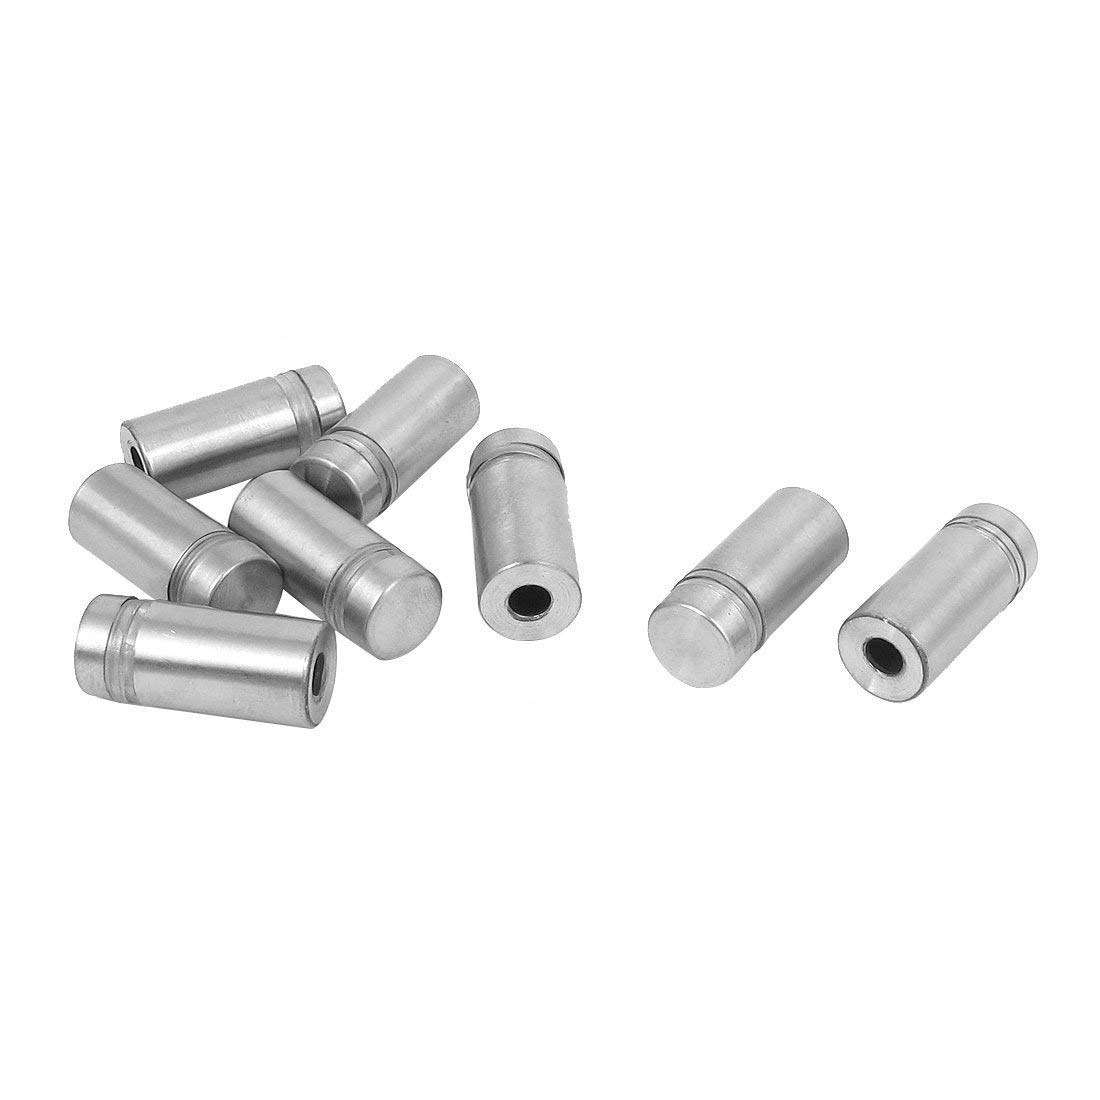 1-inch Diameter 15//16-inch Long Stainless Steel Standoff Hardware for Glass Display Silver Set of 8